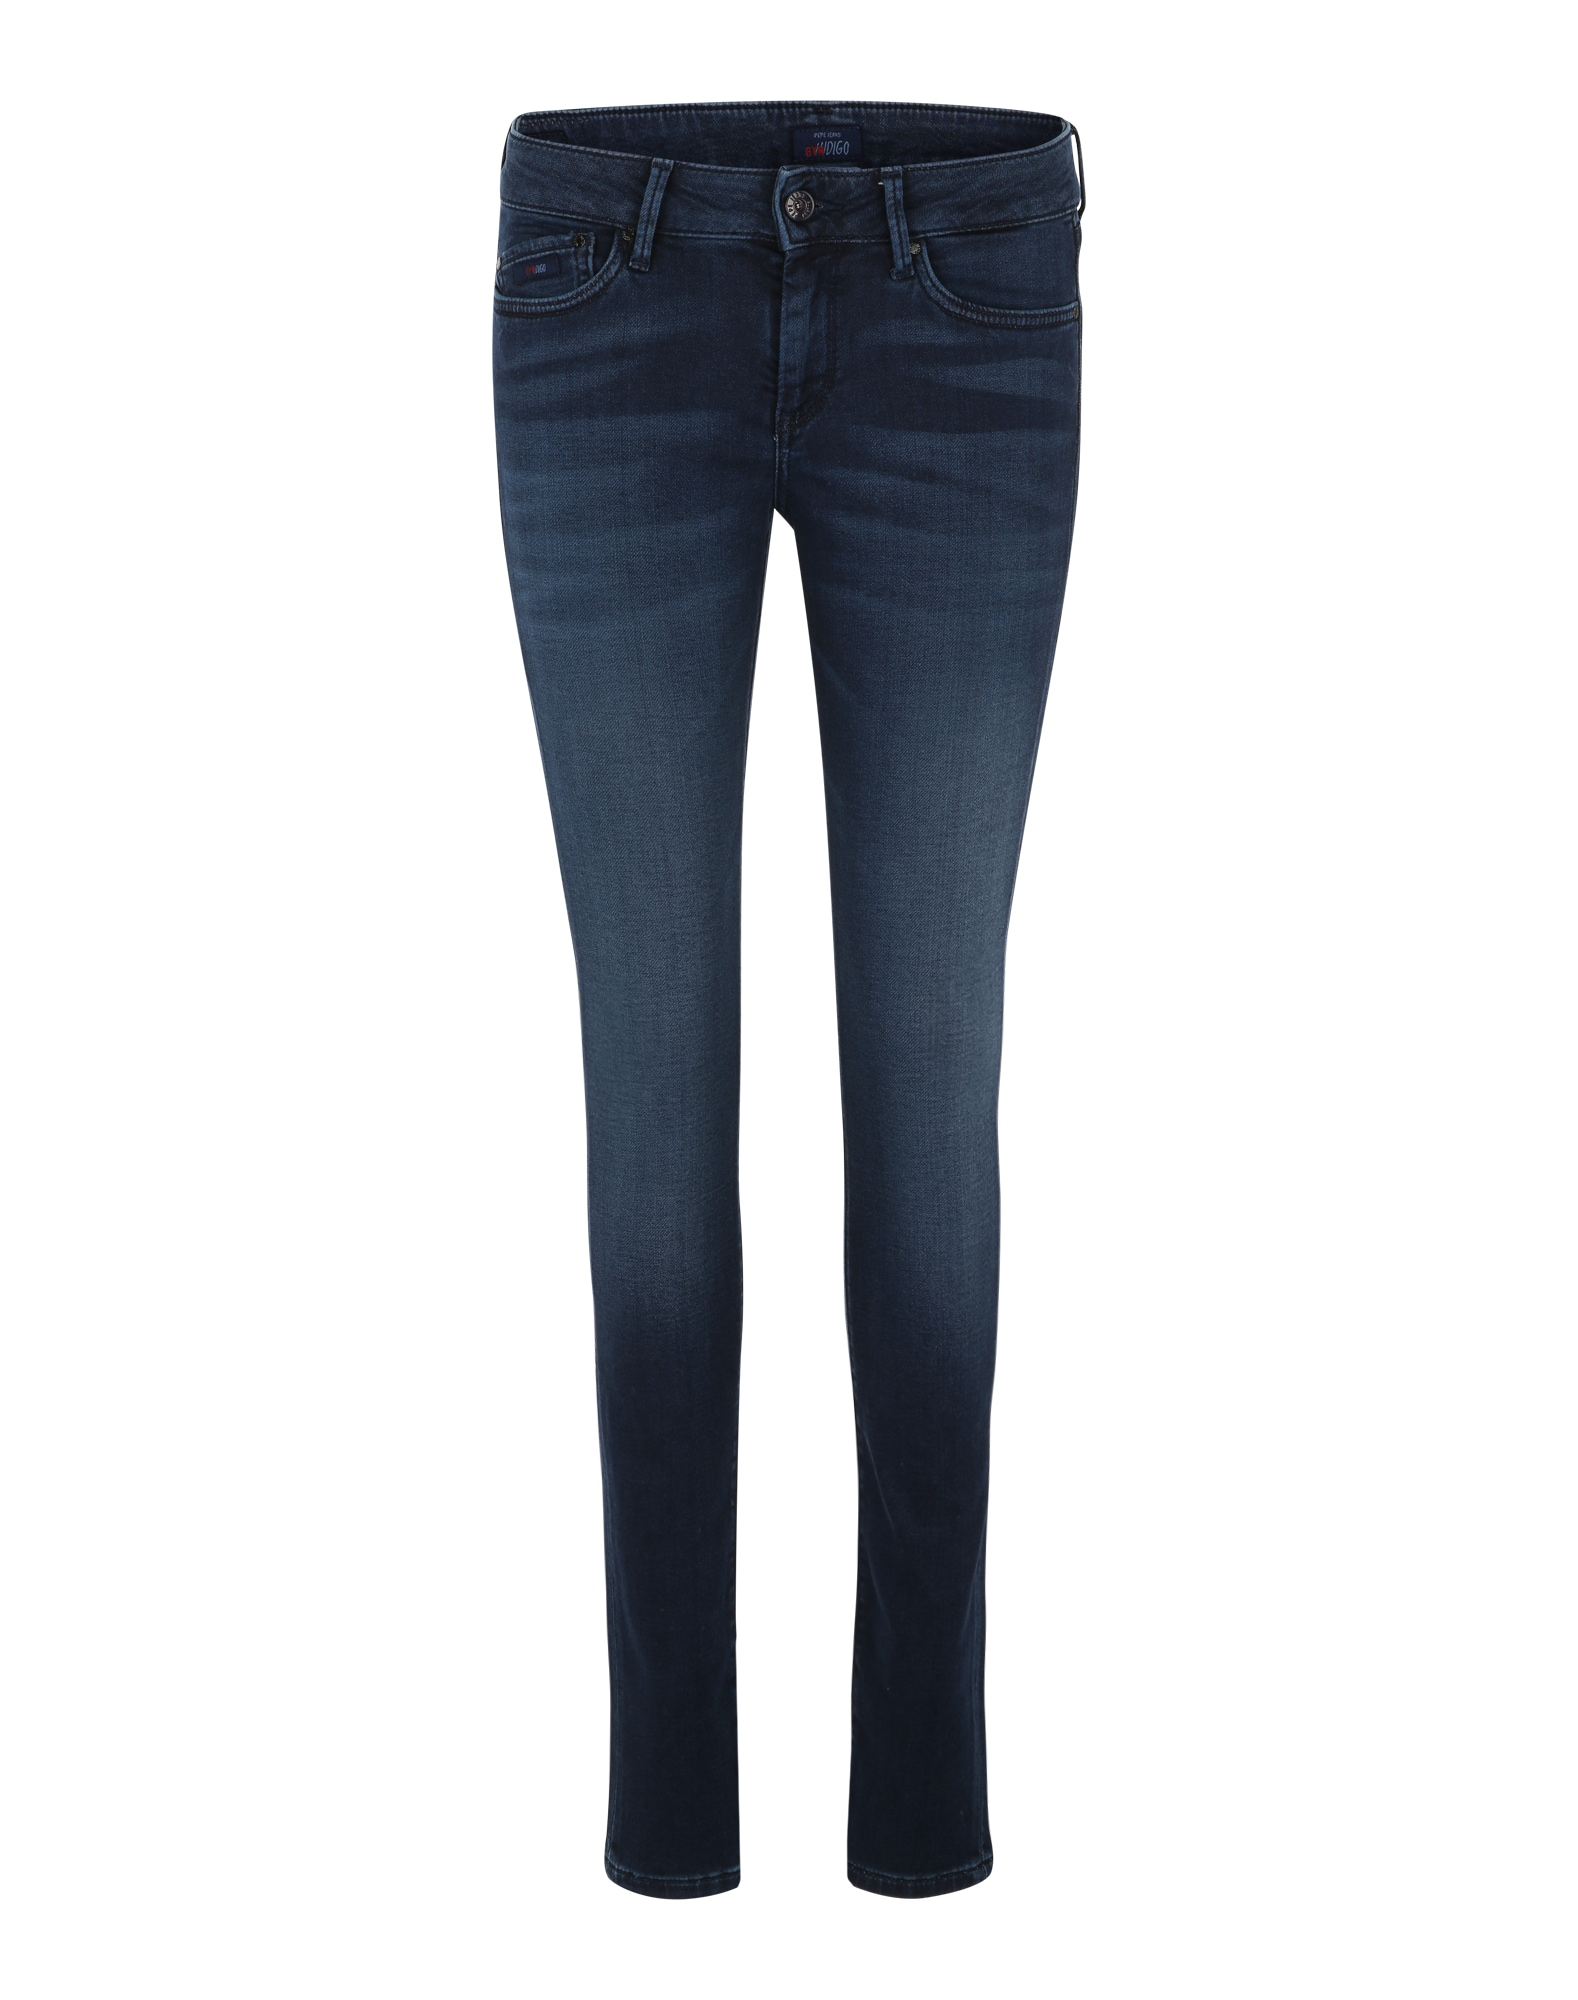 Pepe Jeans Dames Jeans Pixie donkerblauw